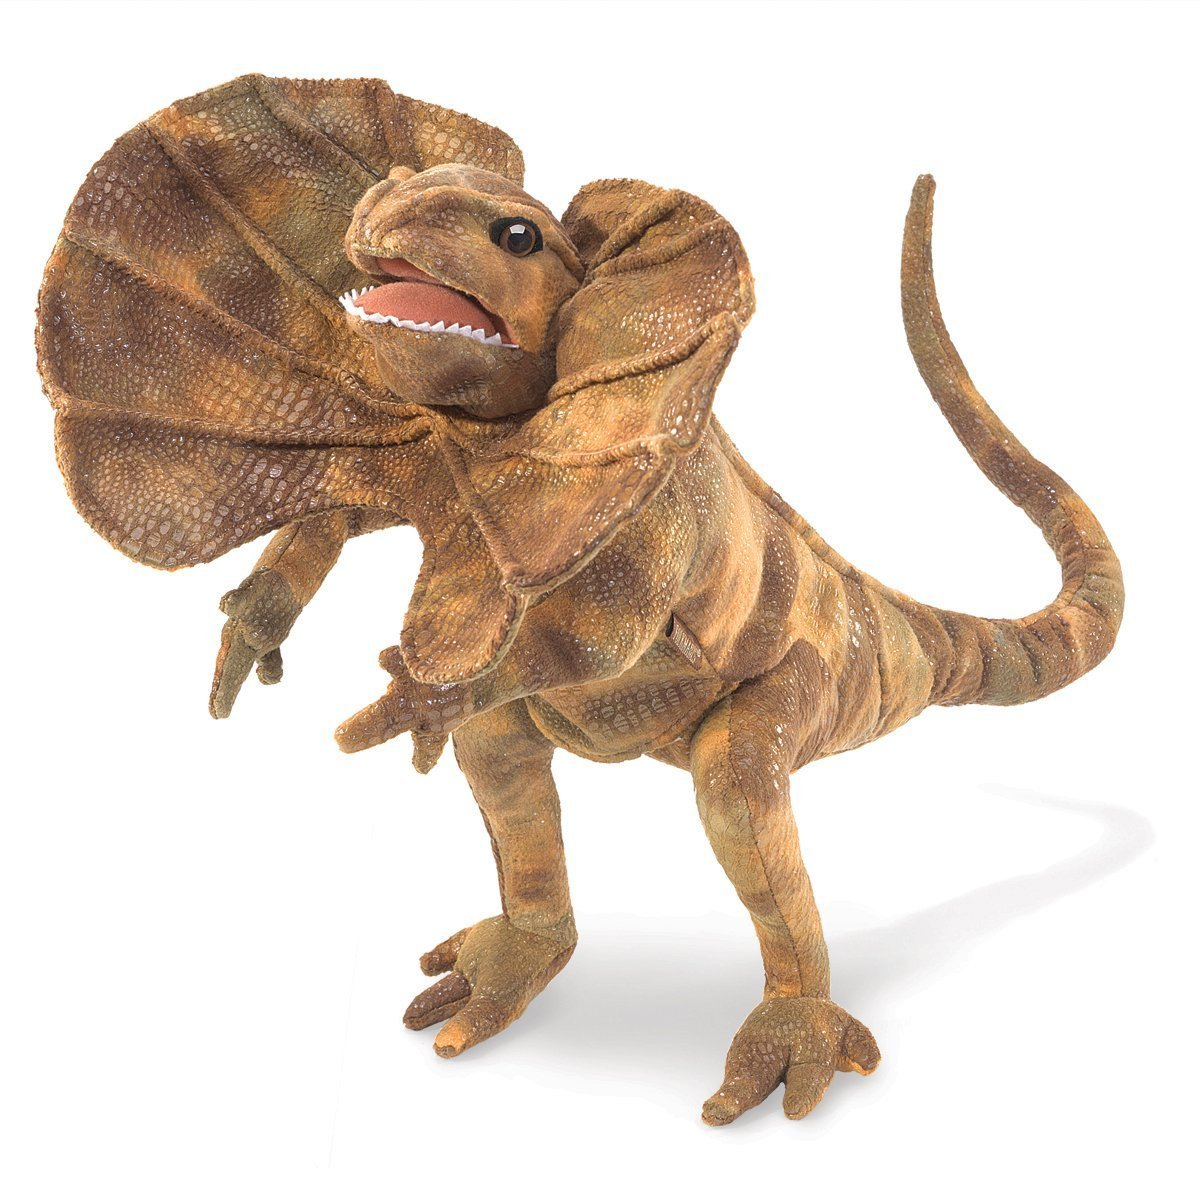 Folkmanis Hand Puppet - Frilled Lizard image